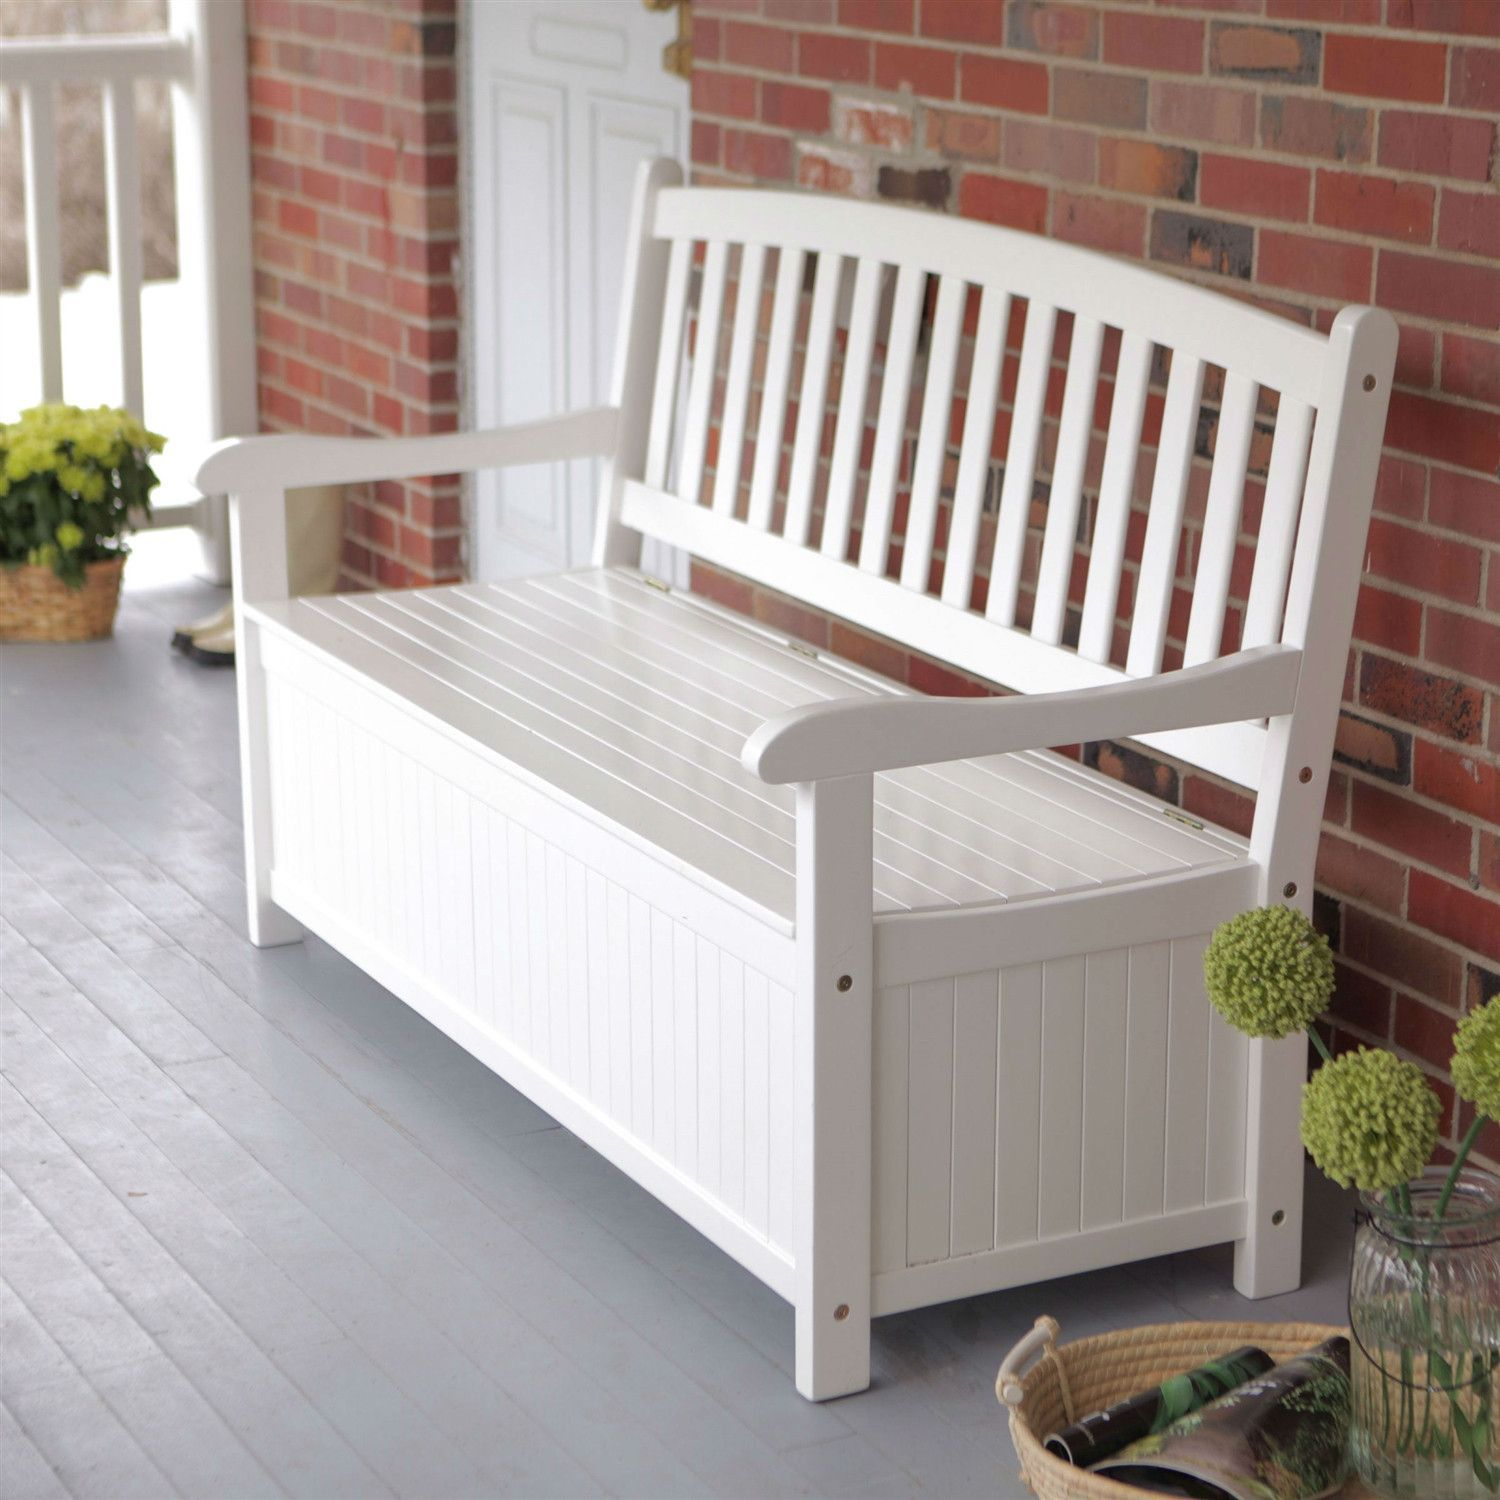 White Wood 4 Ft Outdoor Patio Garden Bench Deck Box With Storage Outdoor Storage Bench Patio Storage Deck Box Bench